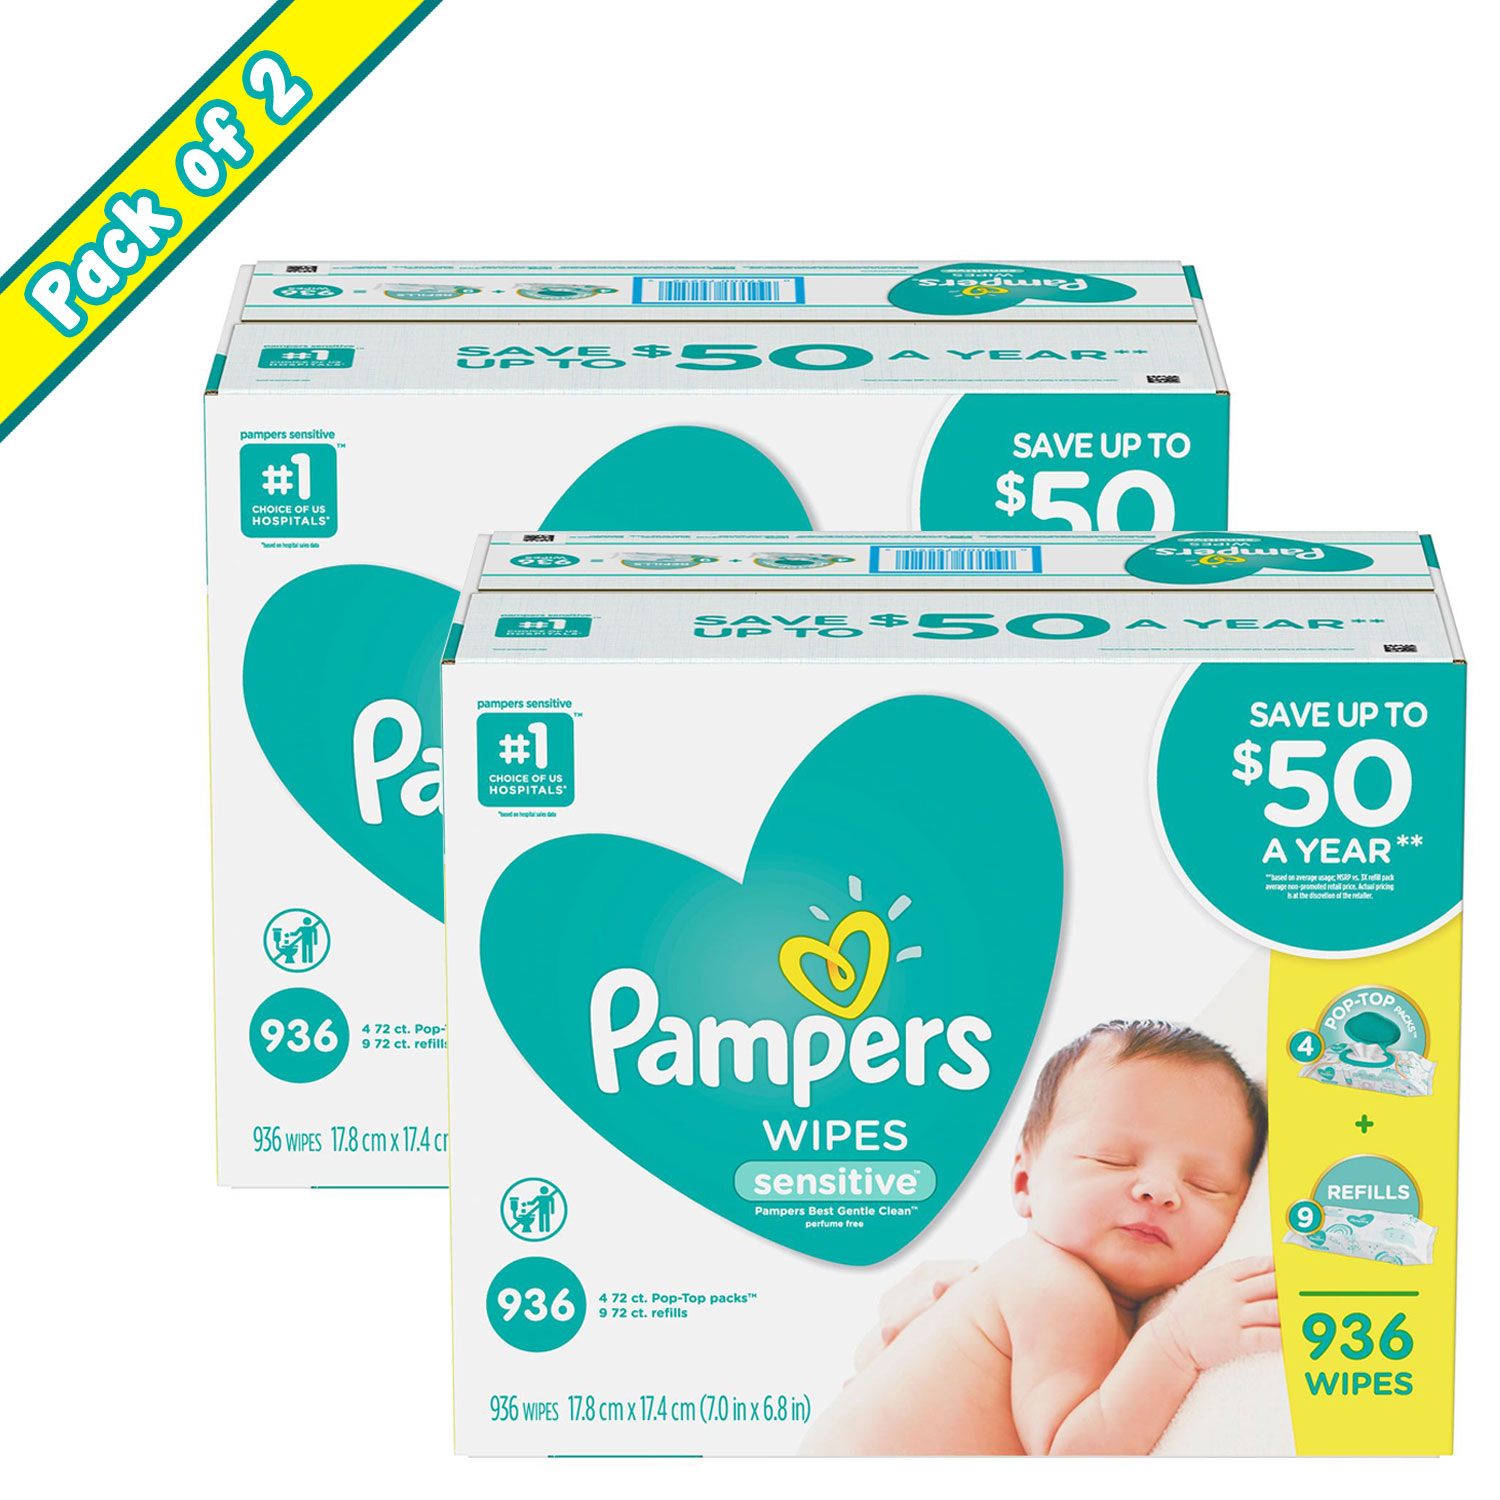 Pack of 2 Pampers Sensitive Baby Wipes 936 ct. (Includes Four 72-ct. Pop-Top Packs w  Nine 72-ct. Resealable... by Unbranded